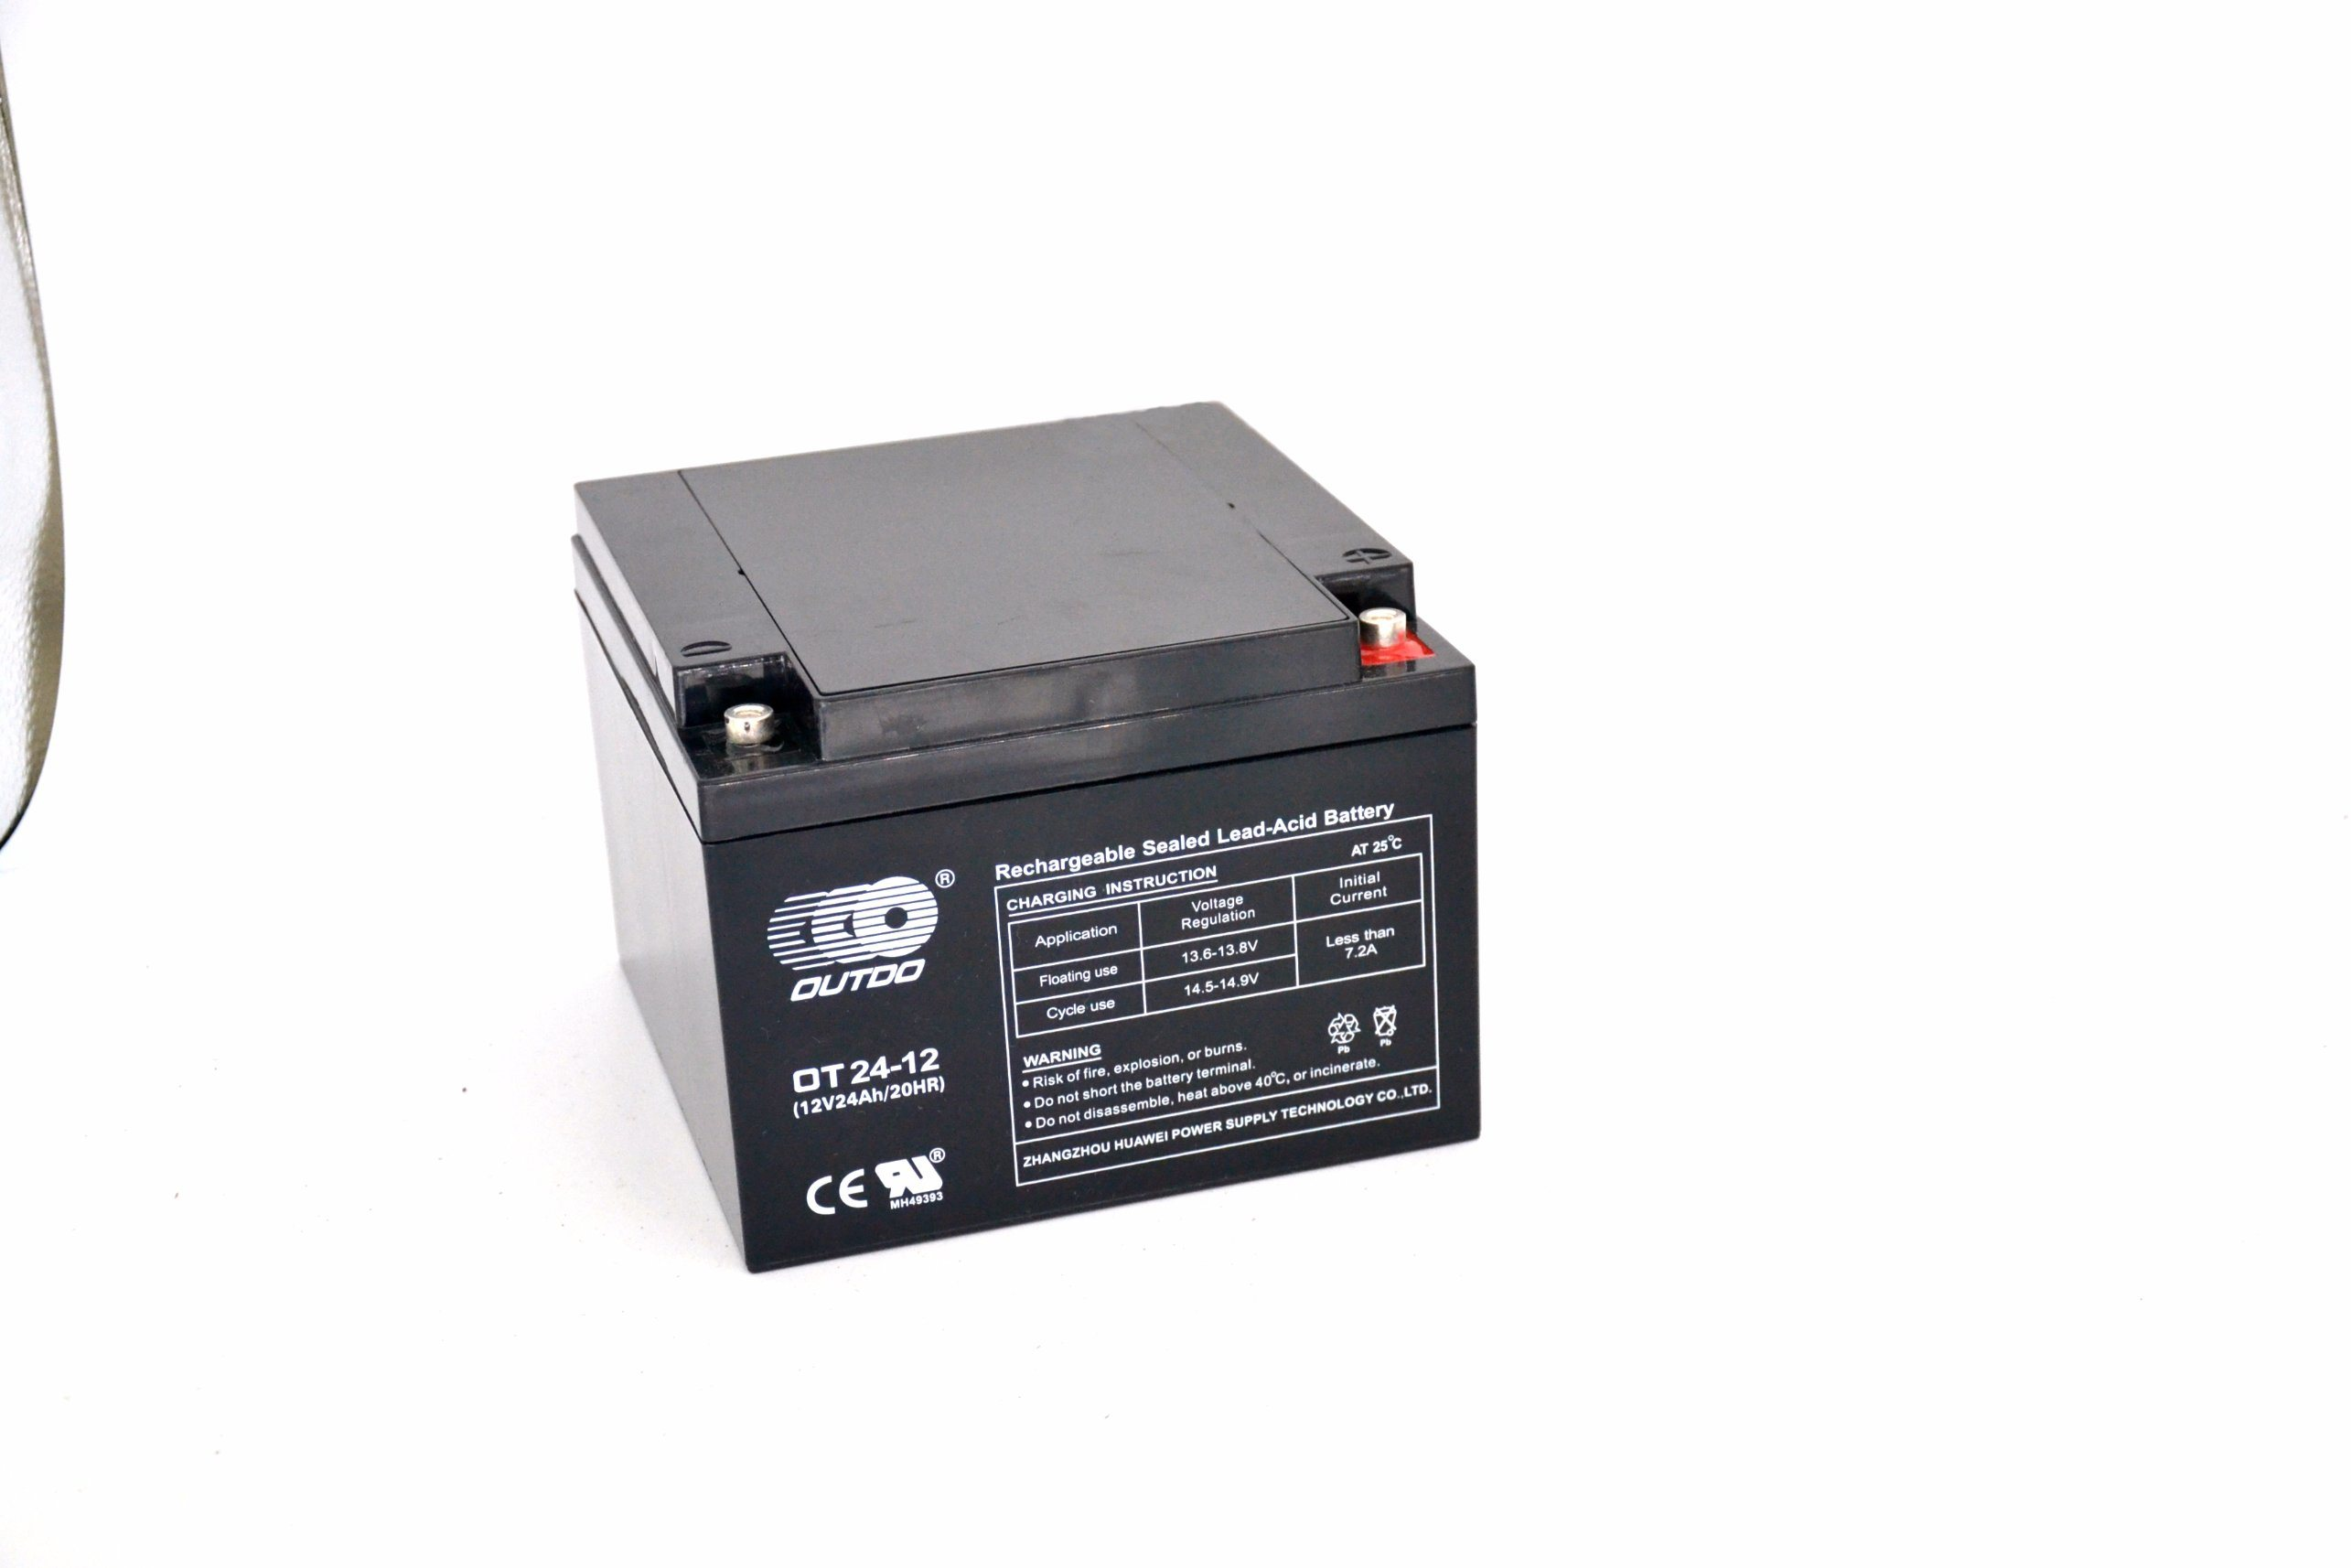 China Rechargeable Sealed Lead Acid Battery Ot24 12 Photos Switching Charger For Car Batteries Leadacid Vrla